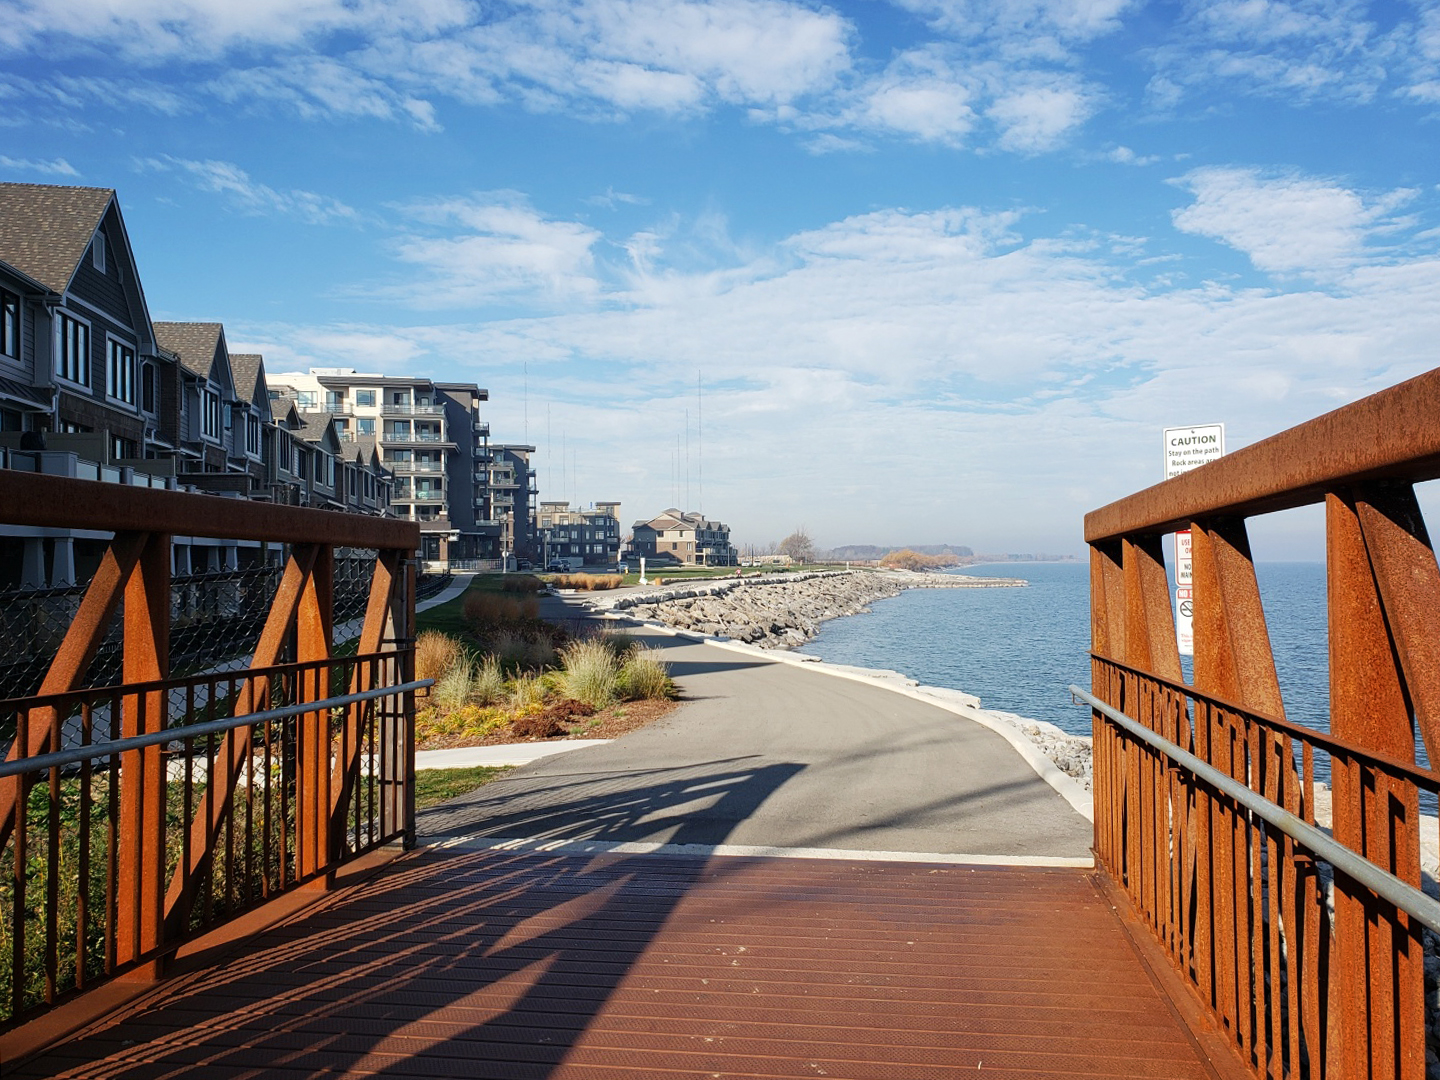 Casablanca Waterfront Project